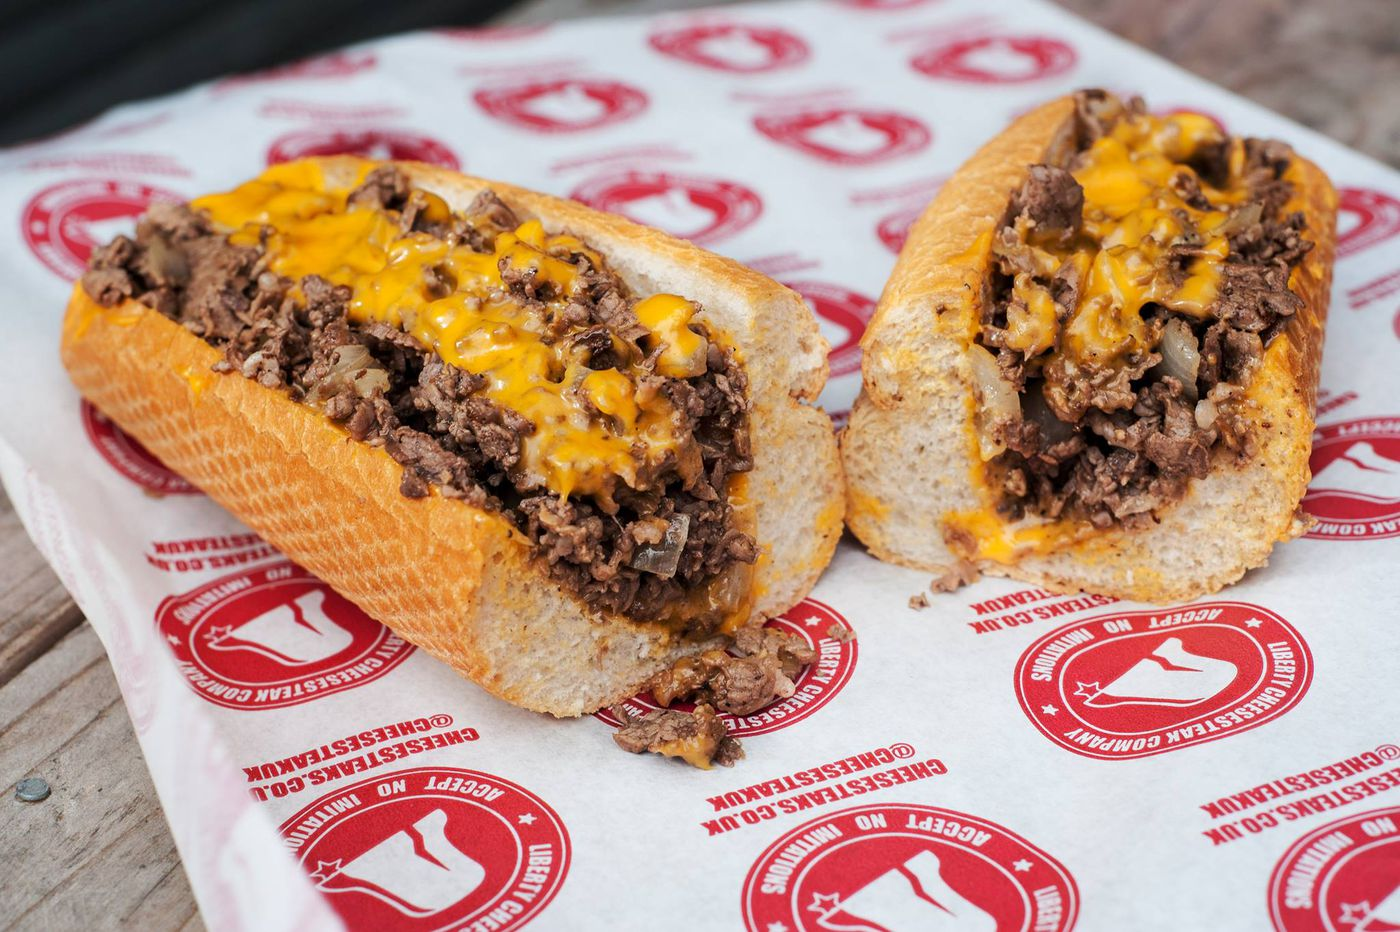 Cheesesteak at London's Passyunk Avenue is nice, says guy who's never had a real cheesesteak